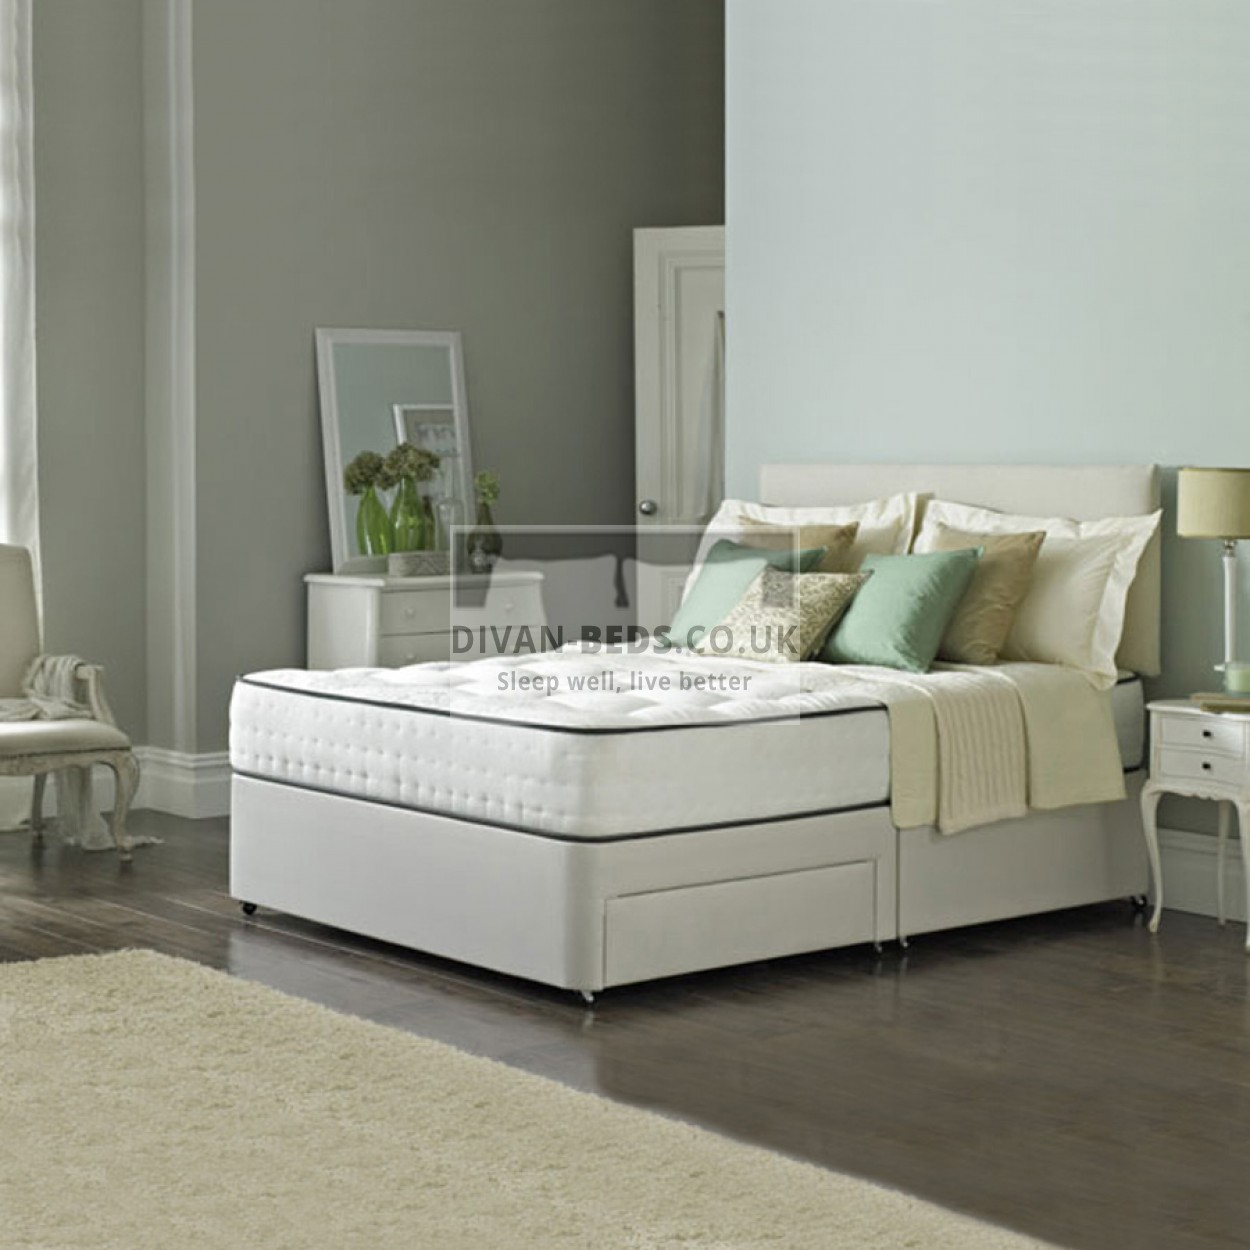 Lambert Divan Fabric Bed With Orthopaedic Spring Memory